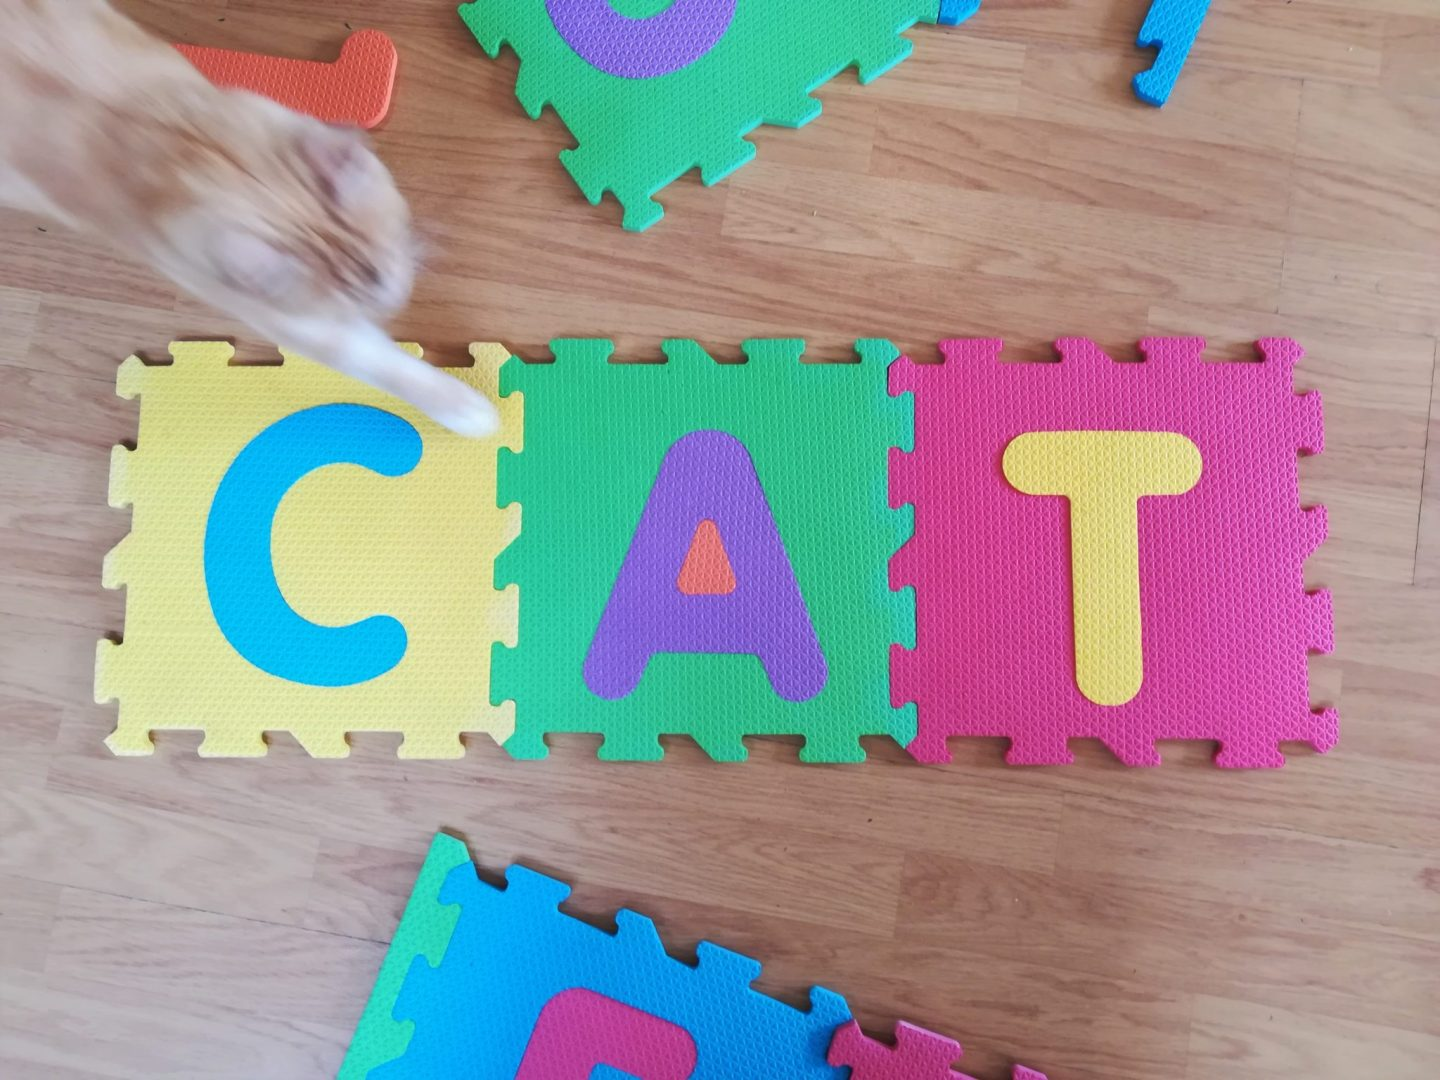 Cat Cat spelt out on floor puzzle